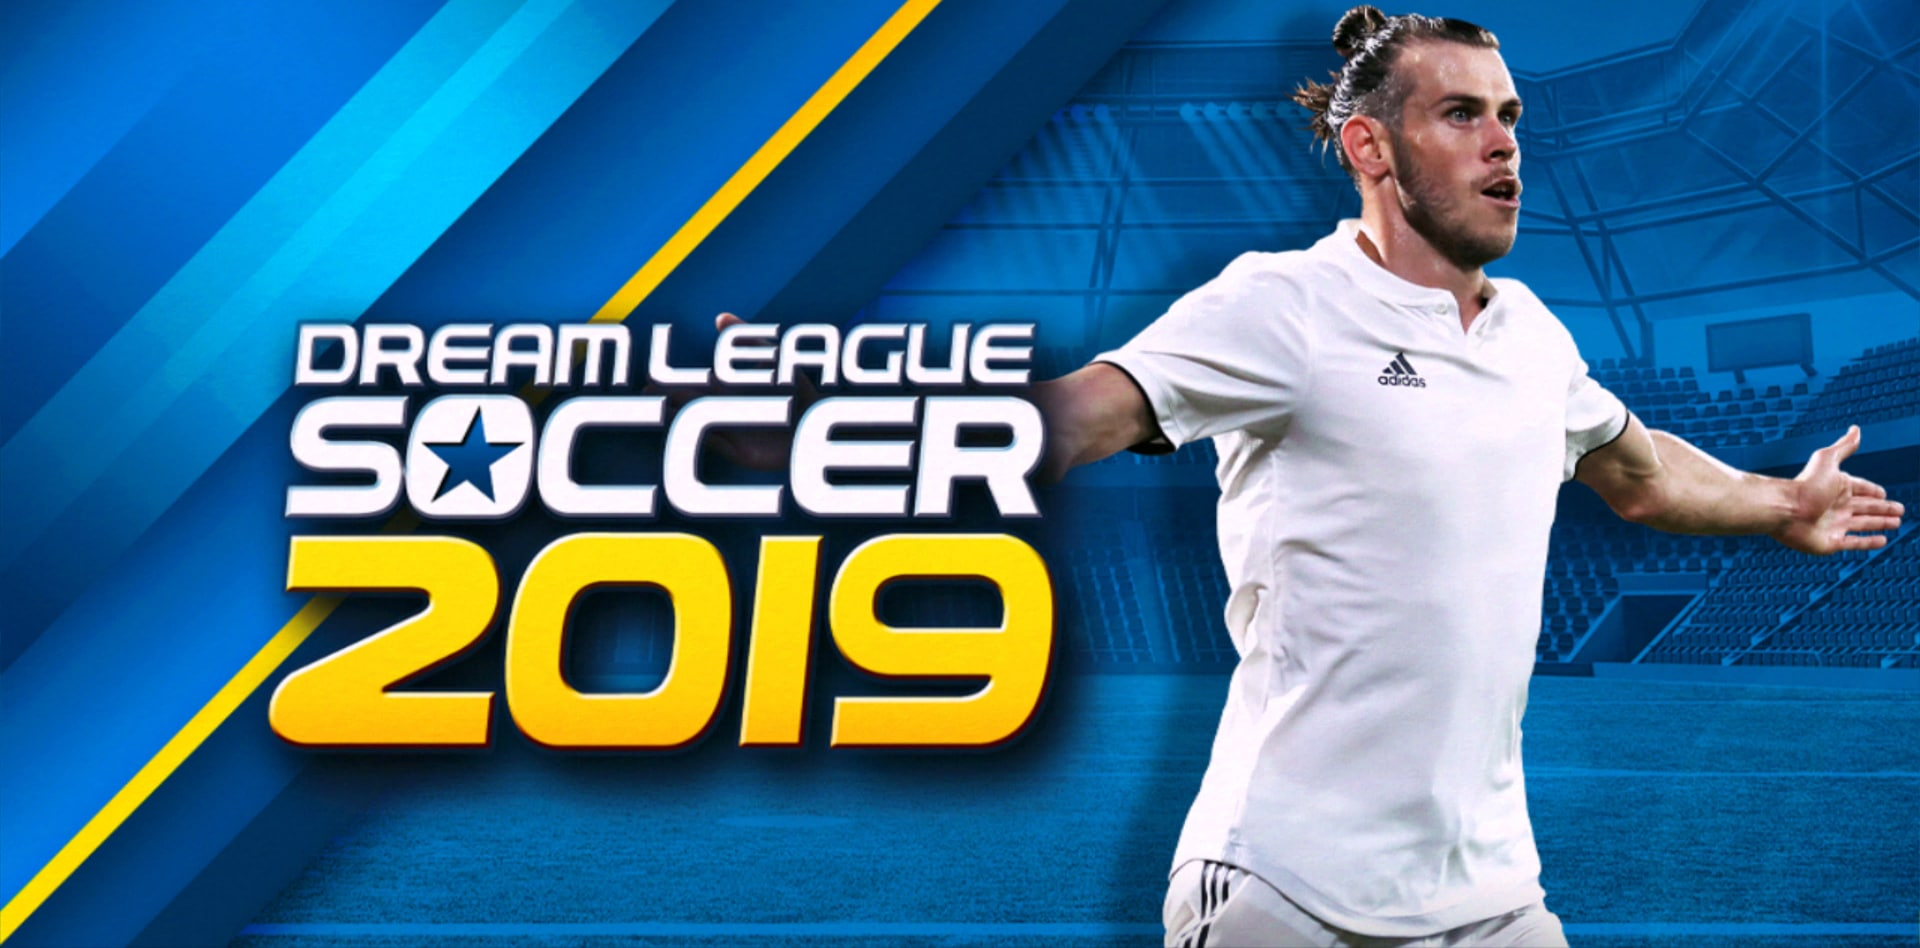 Download Dream League Soccer 2019 Mod Apk V6 03: Dream League Soccer 2019 V6.13 MOD APK Unlimited Money